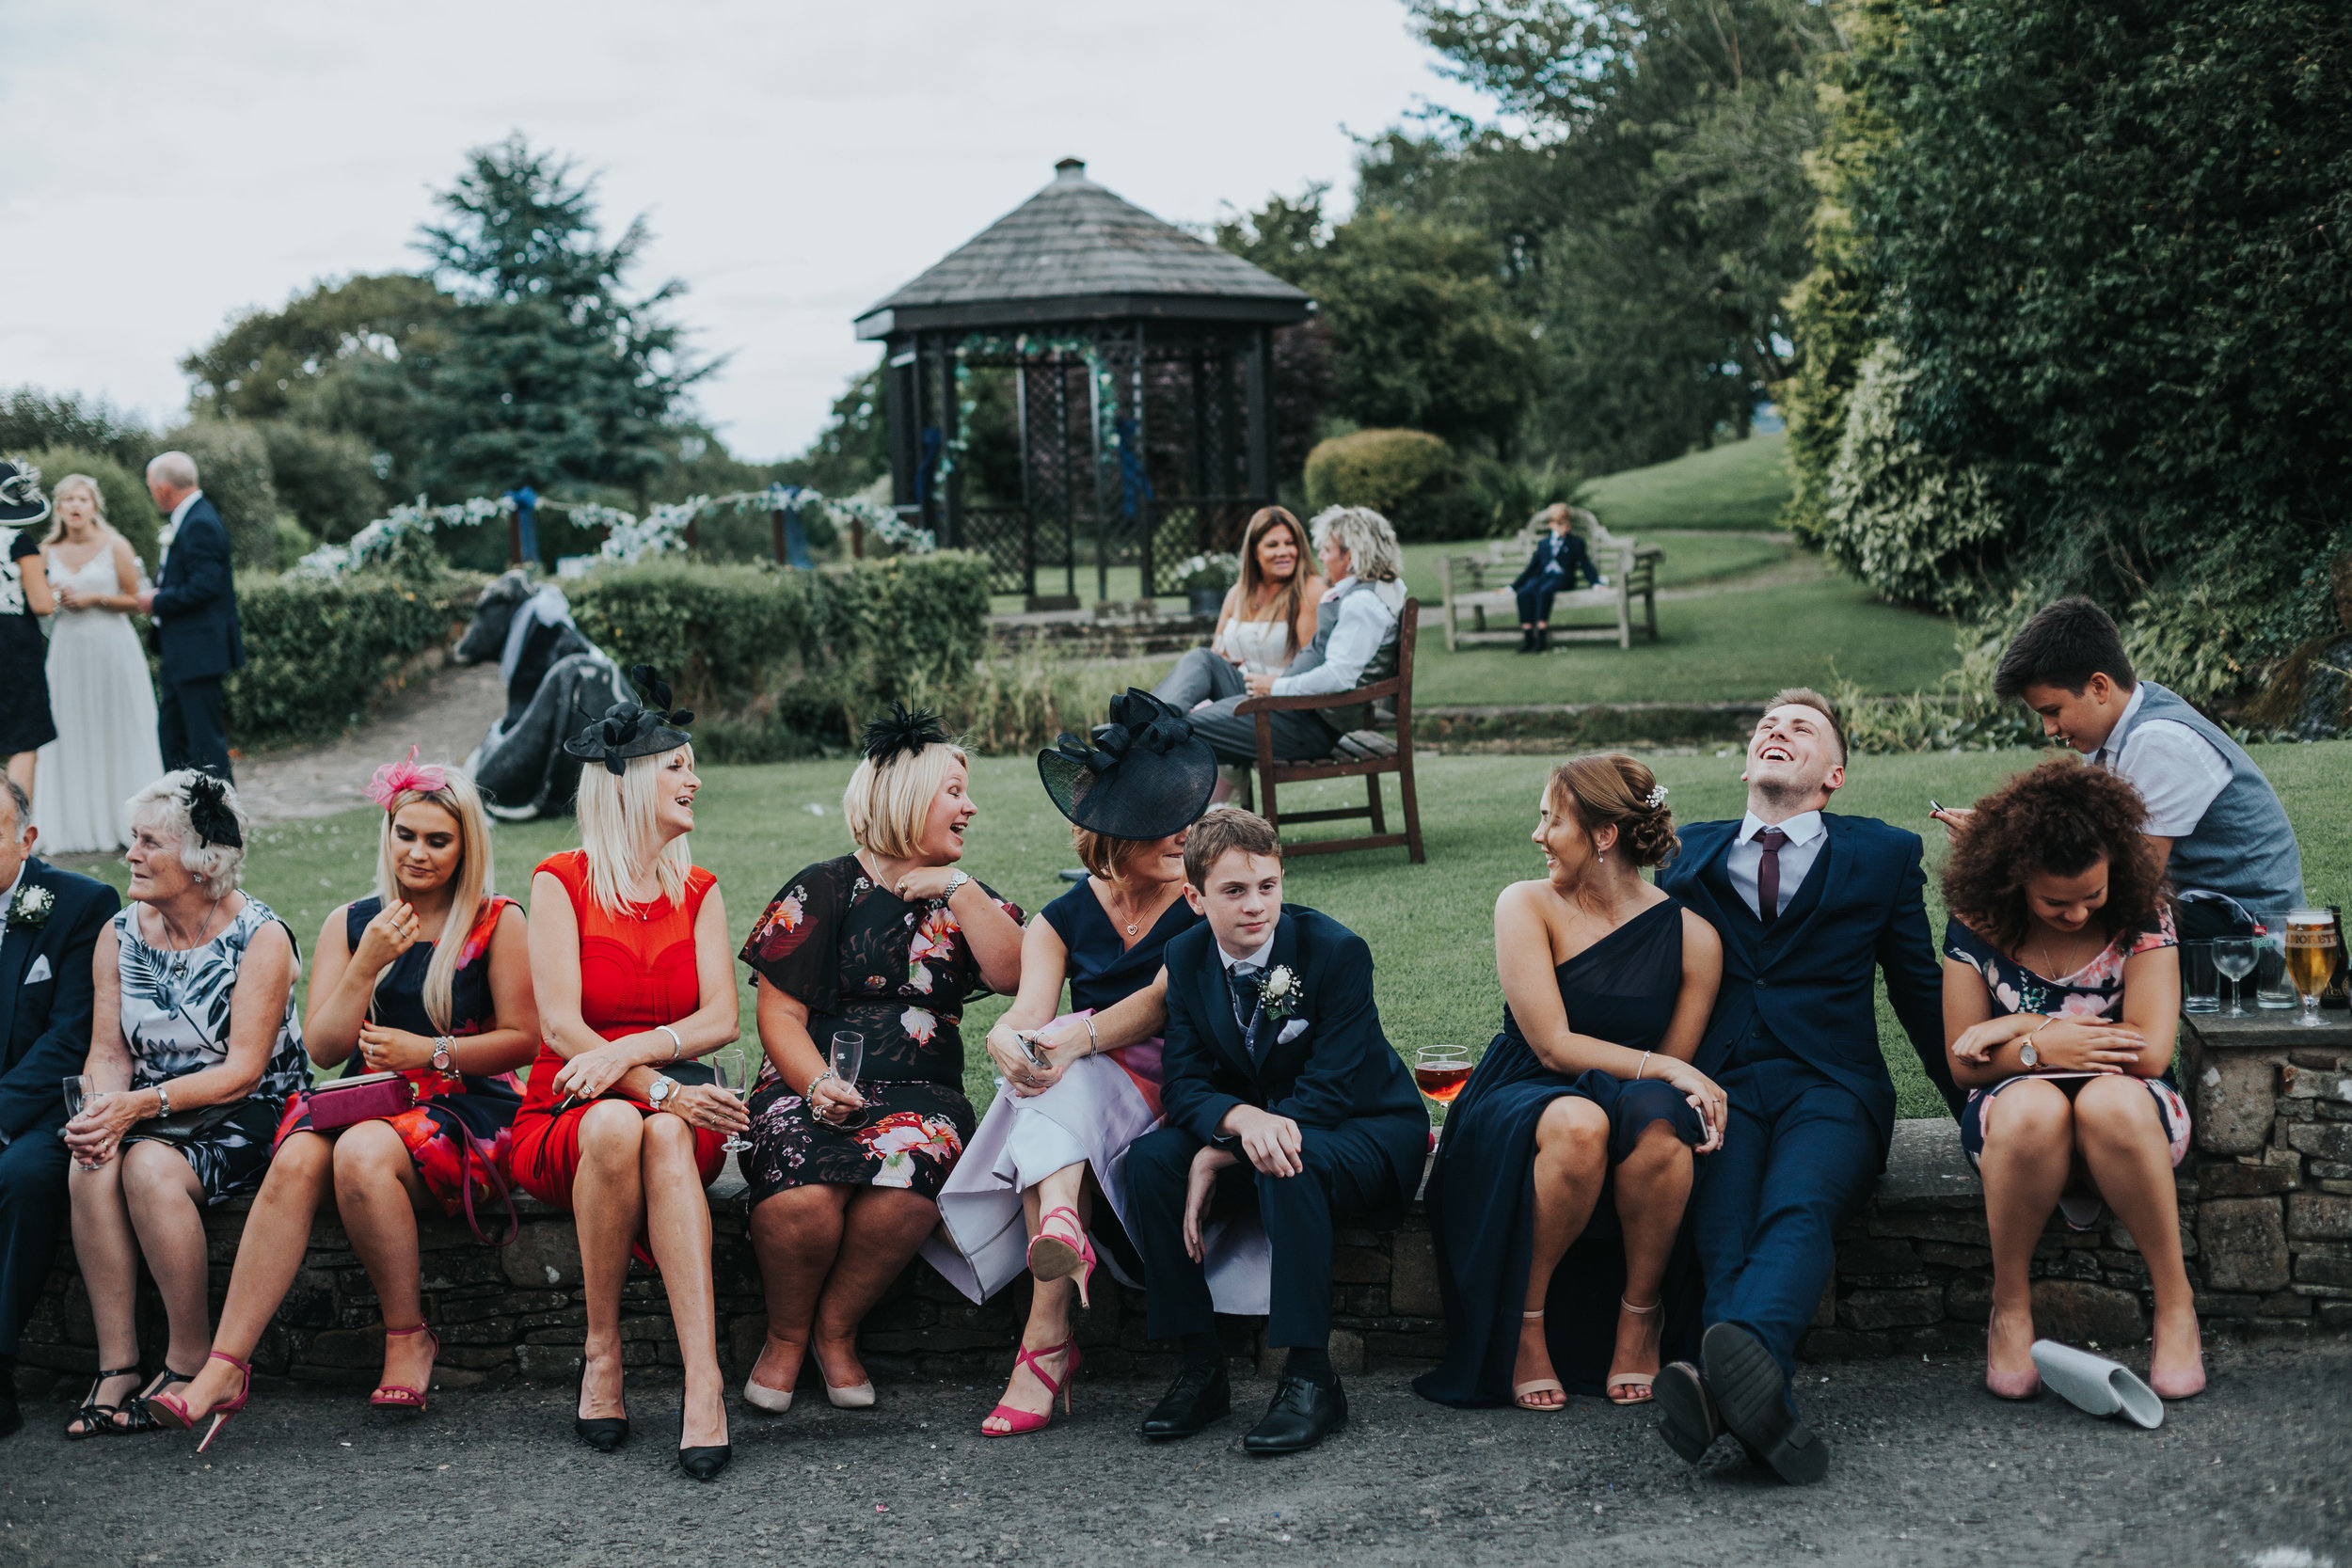 Wedding guests sit on a wall together laughing and drinking.